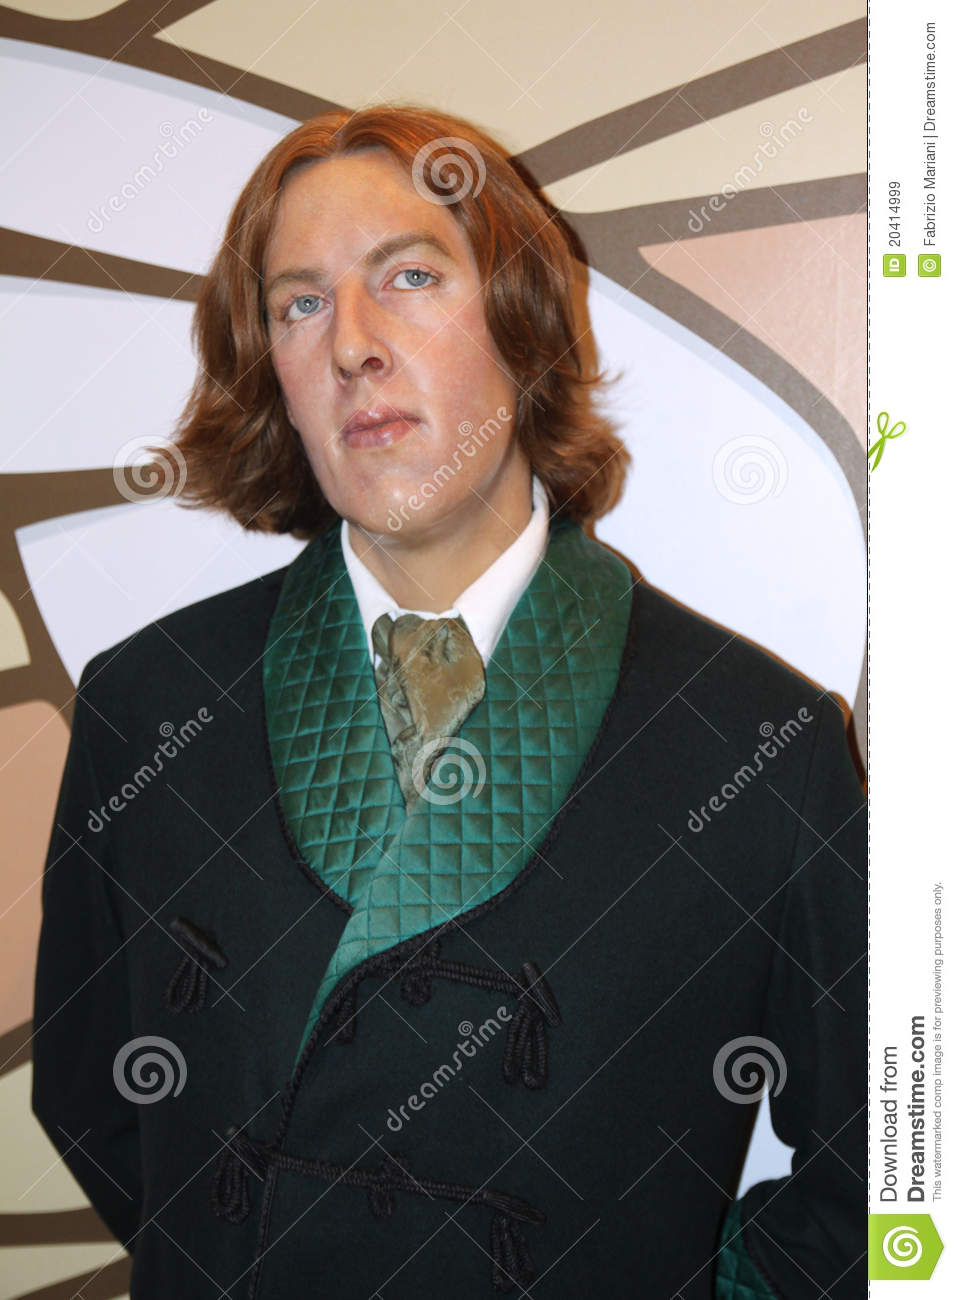 Oscar Wilde wax statues at the famous Madame Tussaud's museum in ...